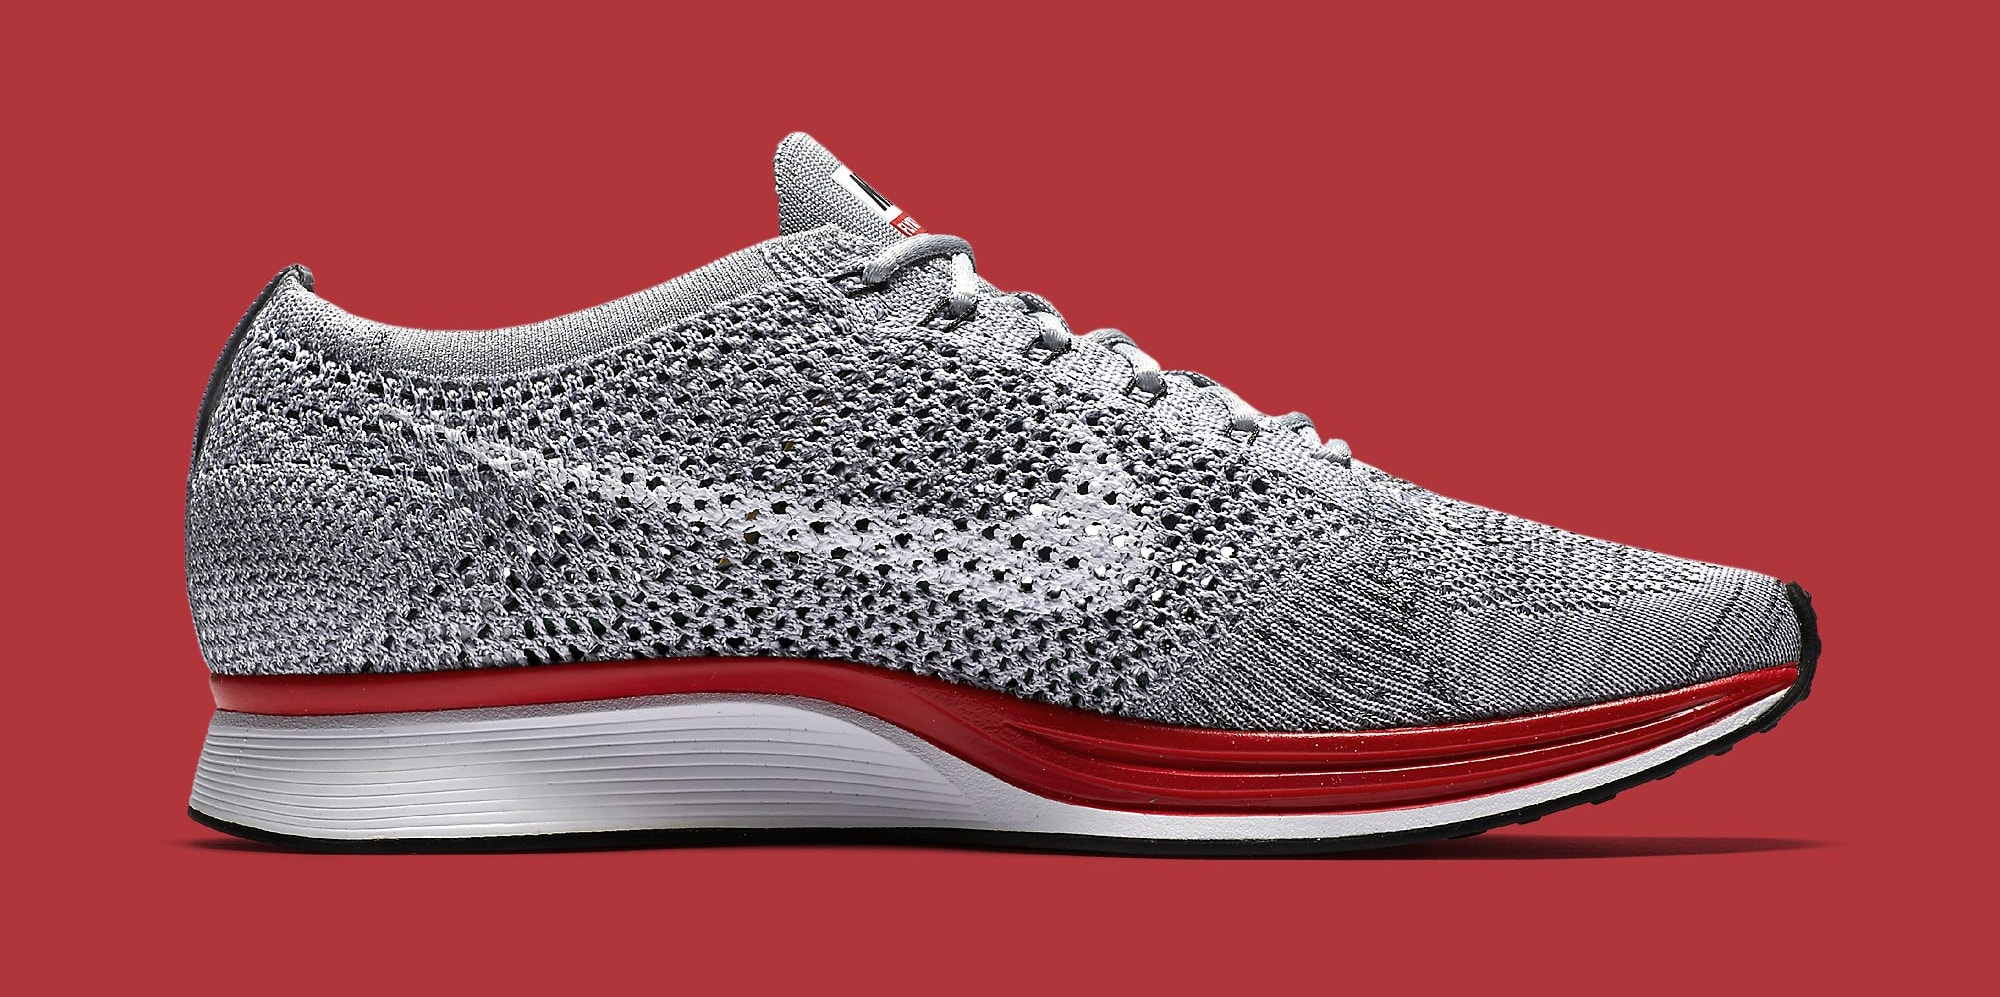 Nike Flyknit Racer Grey Red 526628-013 Medial